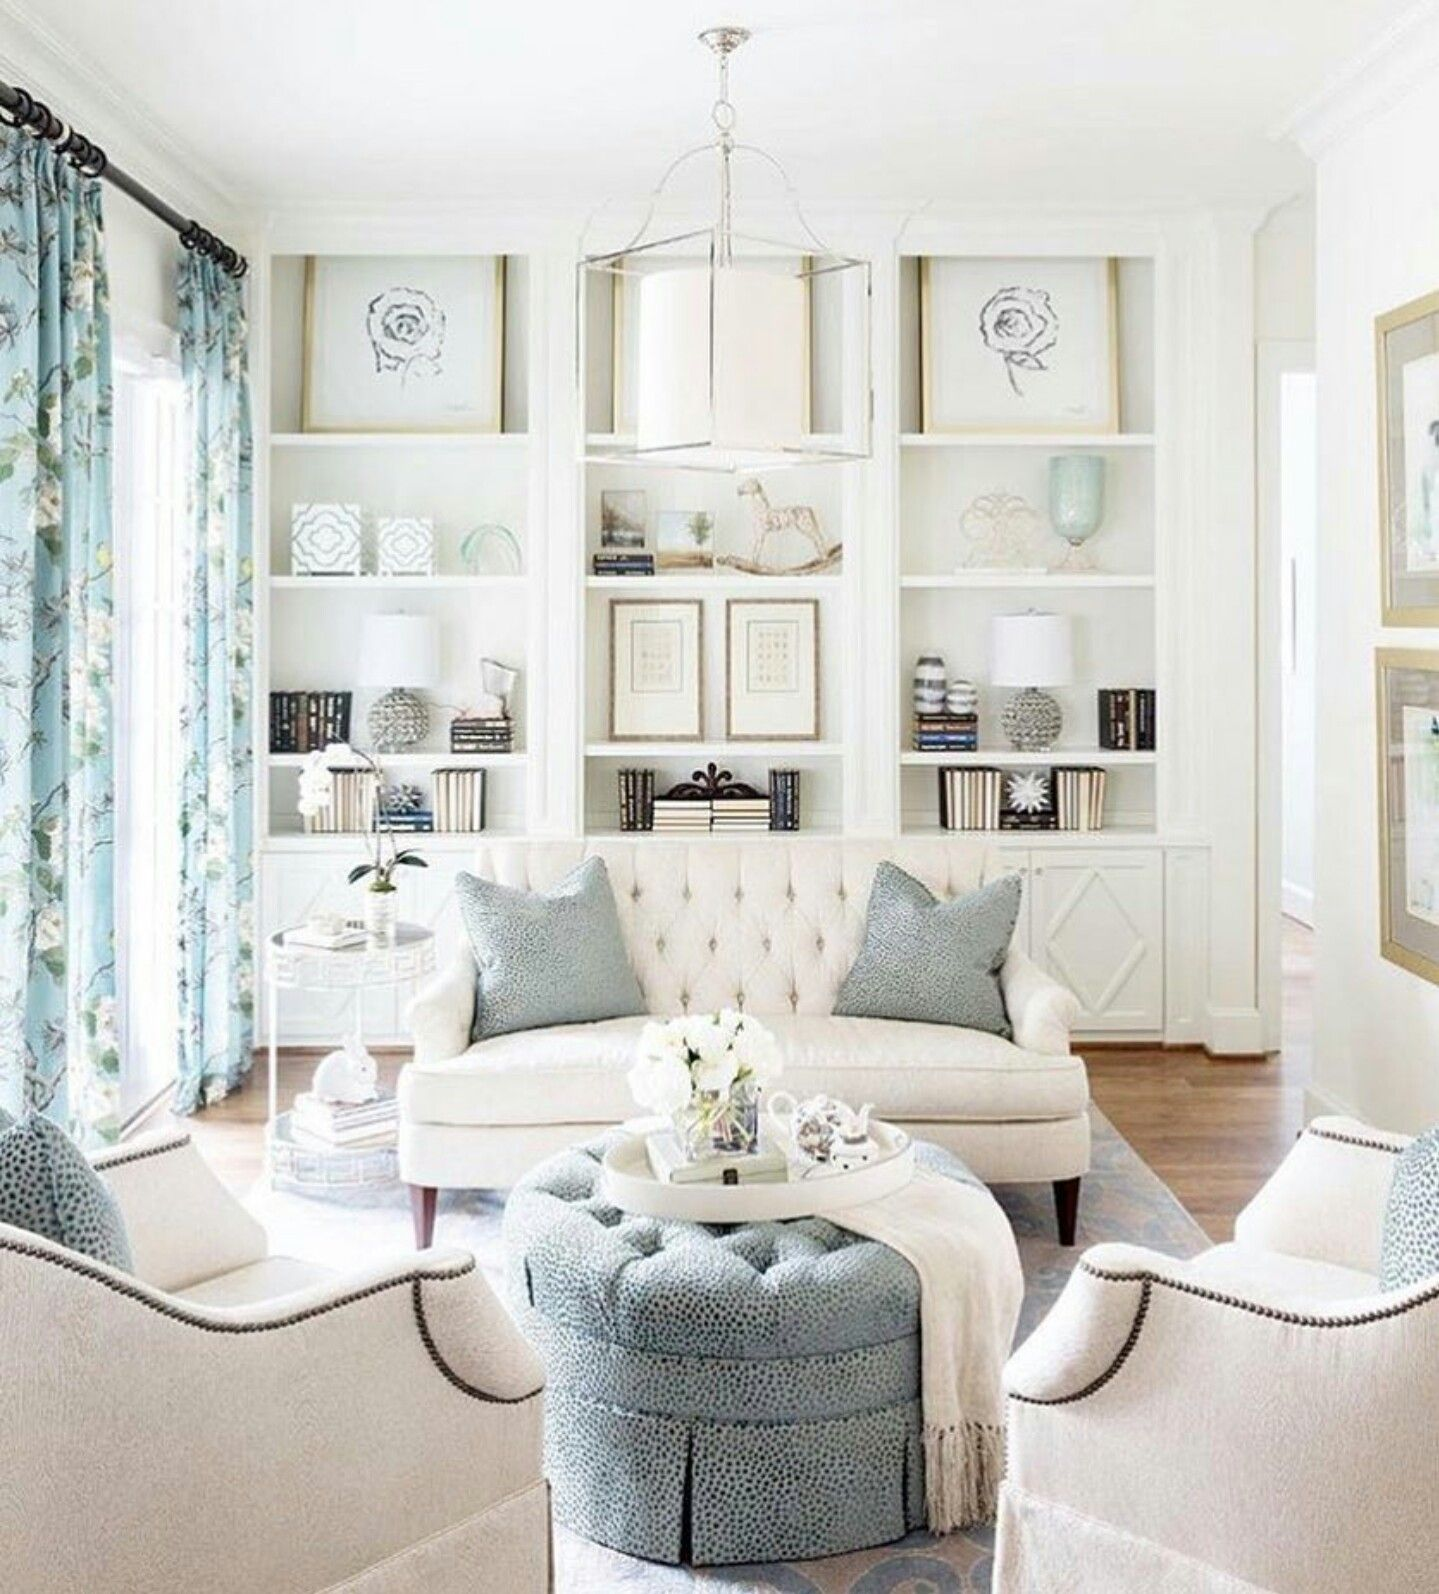 Modern Living Room Design 22 Ideas For Creating: Wonderful Neutral And Pastel Living Room By Heather Scott